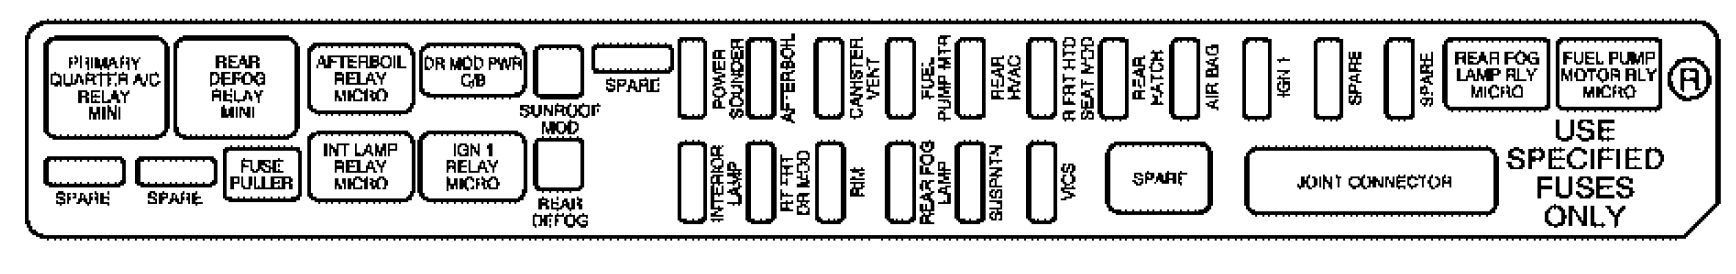 Cadillac SRX fuse box ear compartment passengers side cadillac srx mk1 (first generation; 2004 2006) fuse box 2006 cadillac cts fuse box diagram at fashall.co